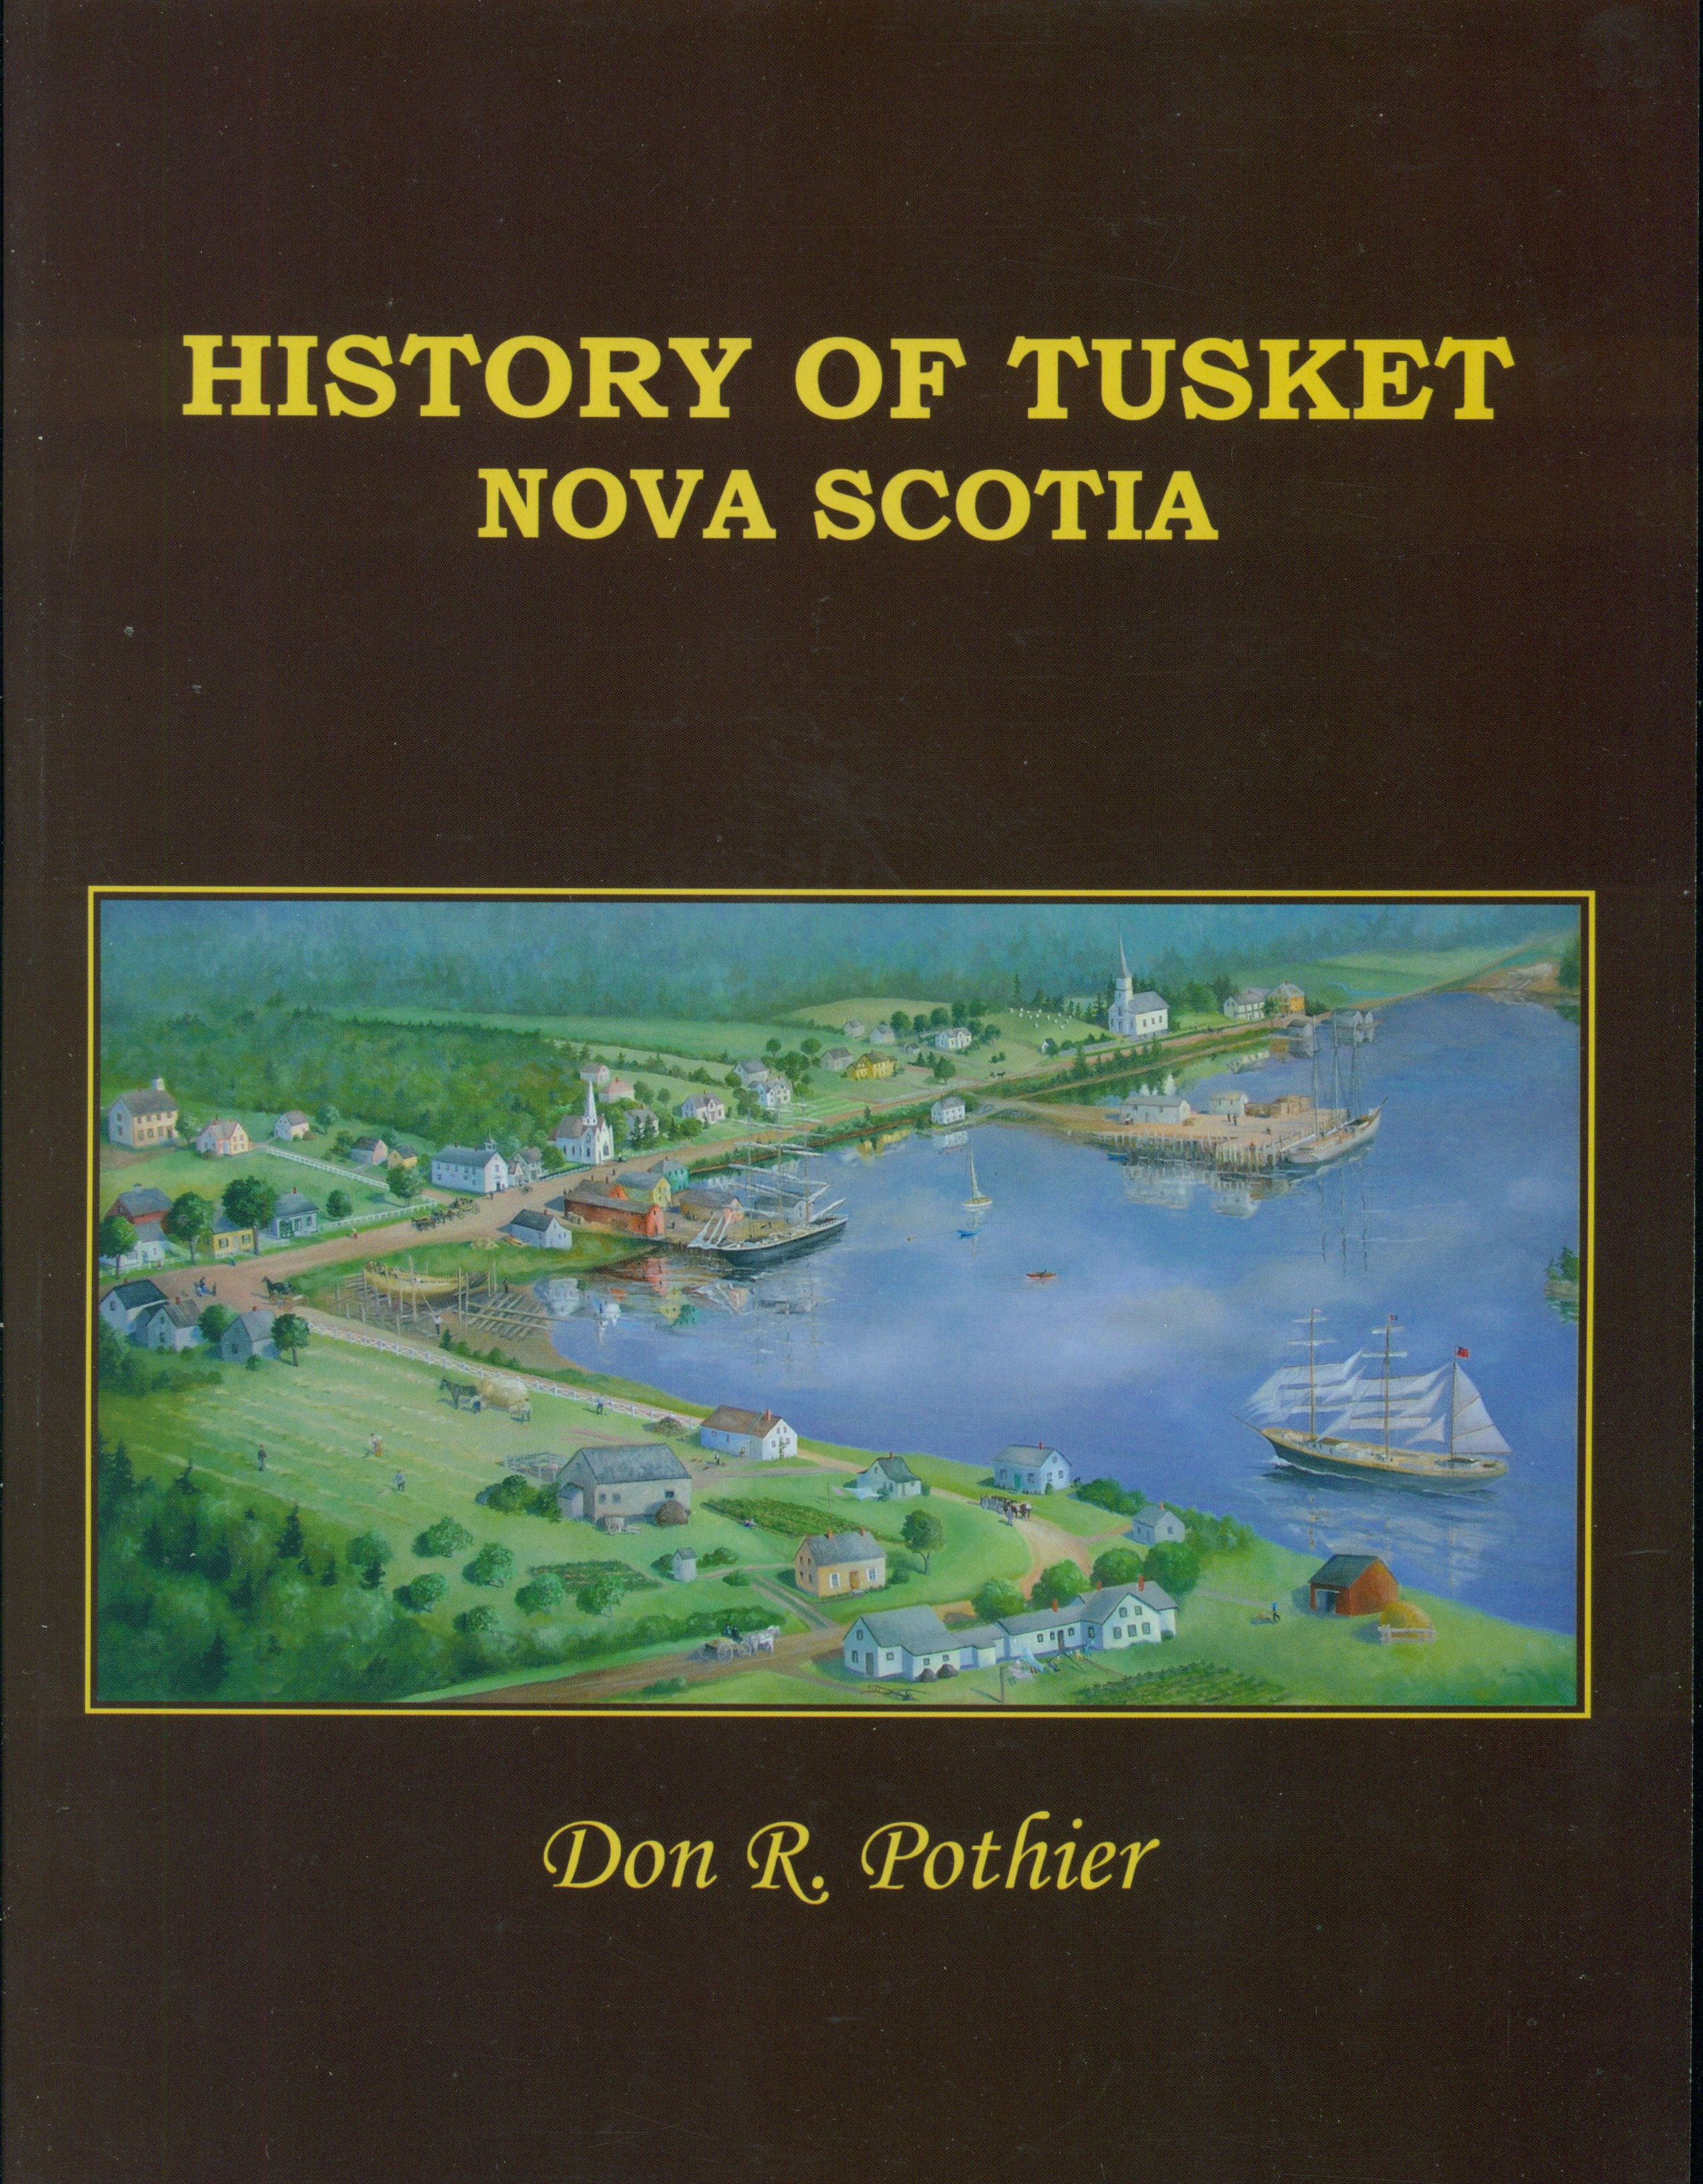 History of Tusket